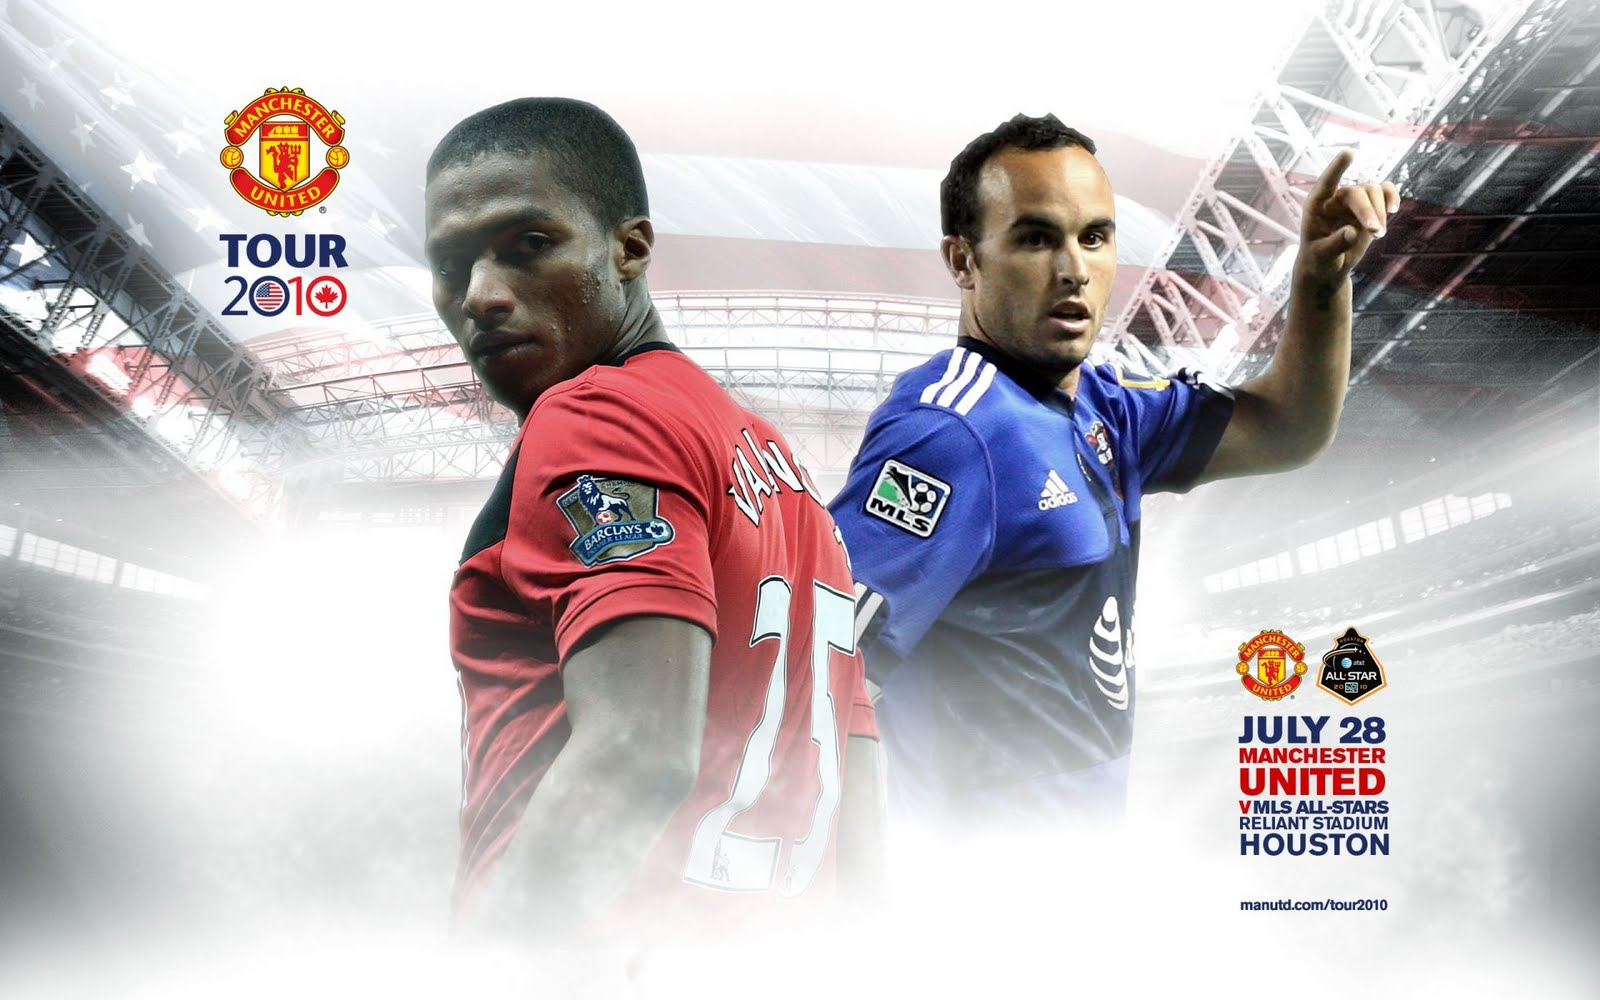 world cup,world cup 2010, South Africa, football, soccer,manchester united wallpaper Team